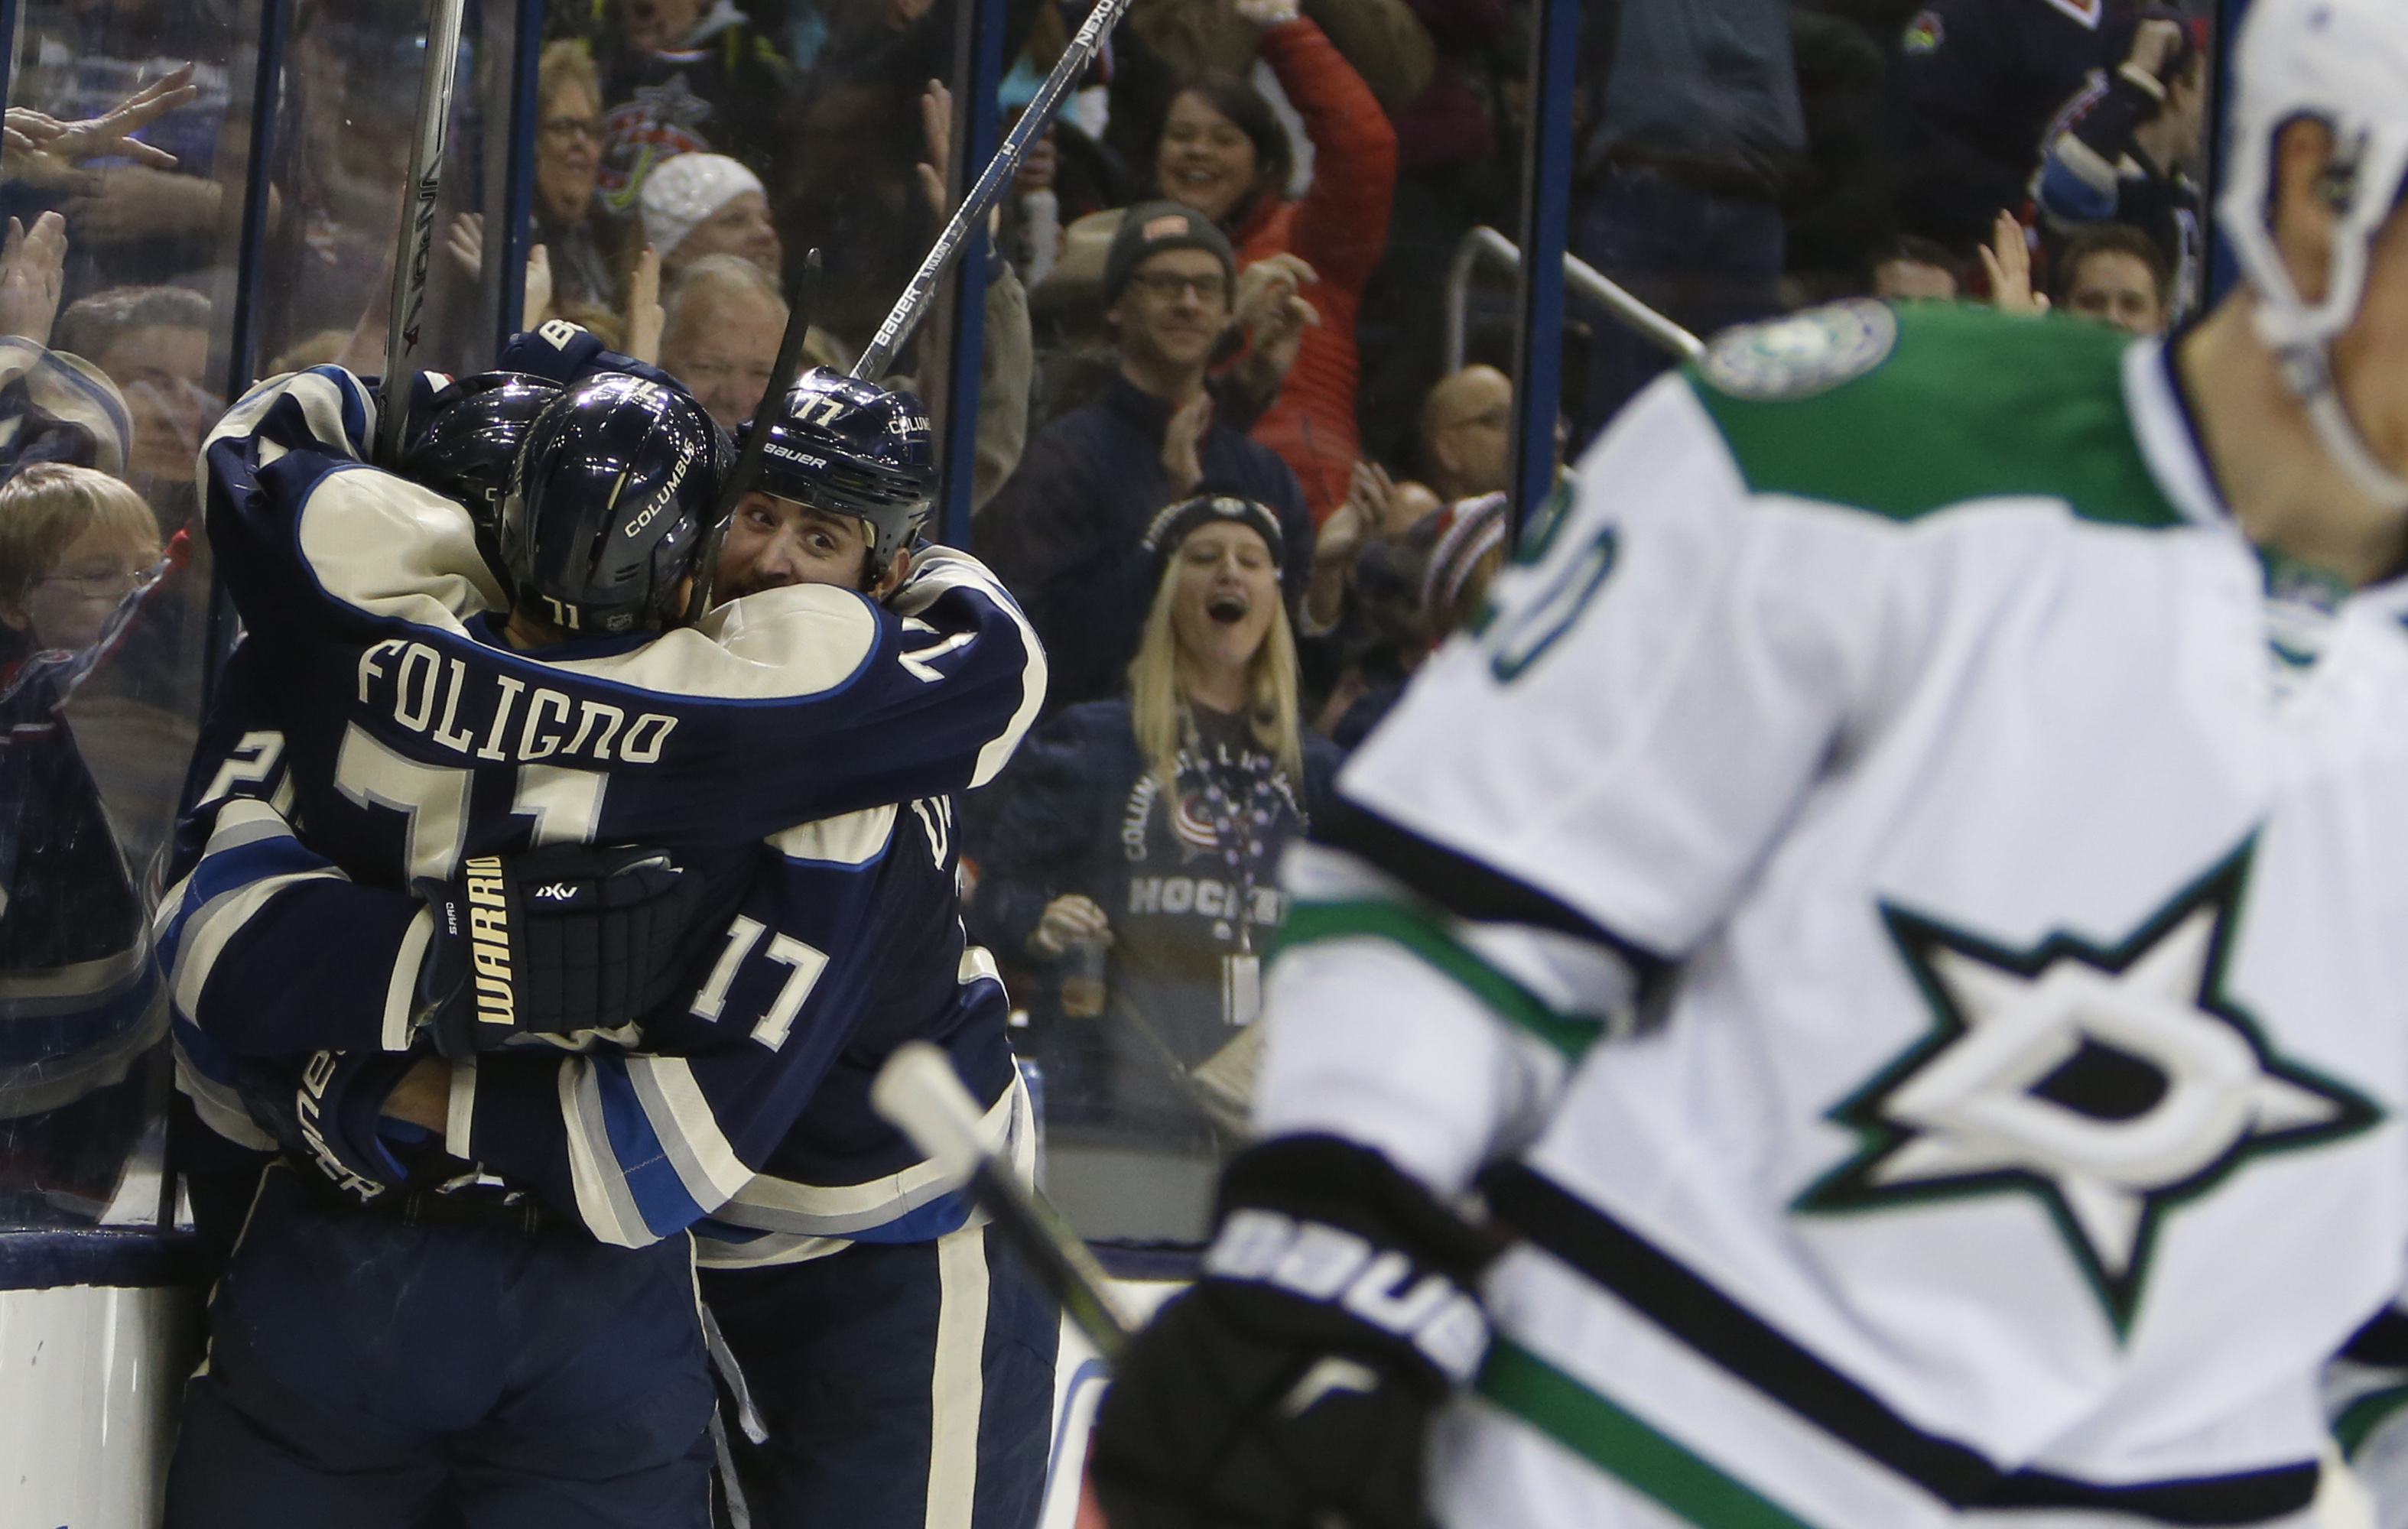 Columbus Blue Jackets' Brandon Saad, left to right, Nick Foligno and Brandon Dubinsky celebrate their goal against the Dallas Stars during the second period of an NHL hockey game Tuesday, Dec. 29, 2015, in Columbus, Ohio. The Blue Jackets won 6-3. (AP Pho